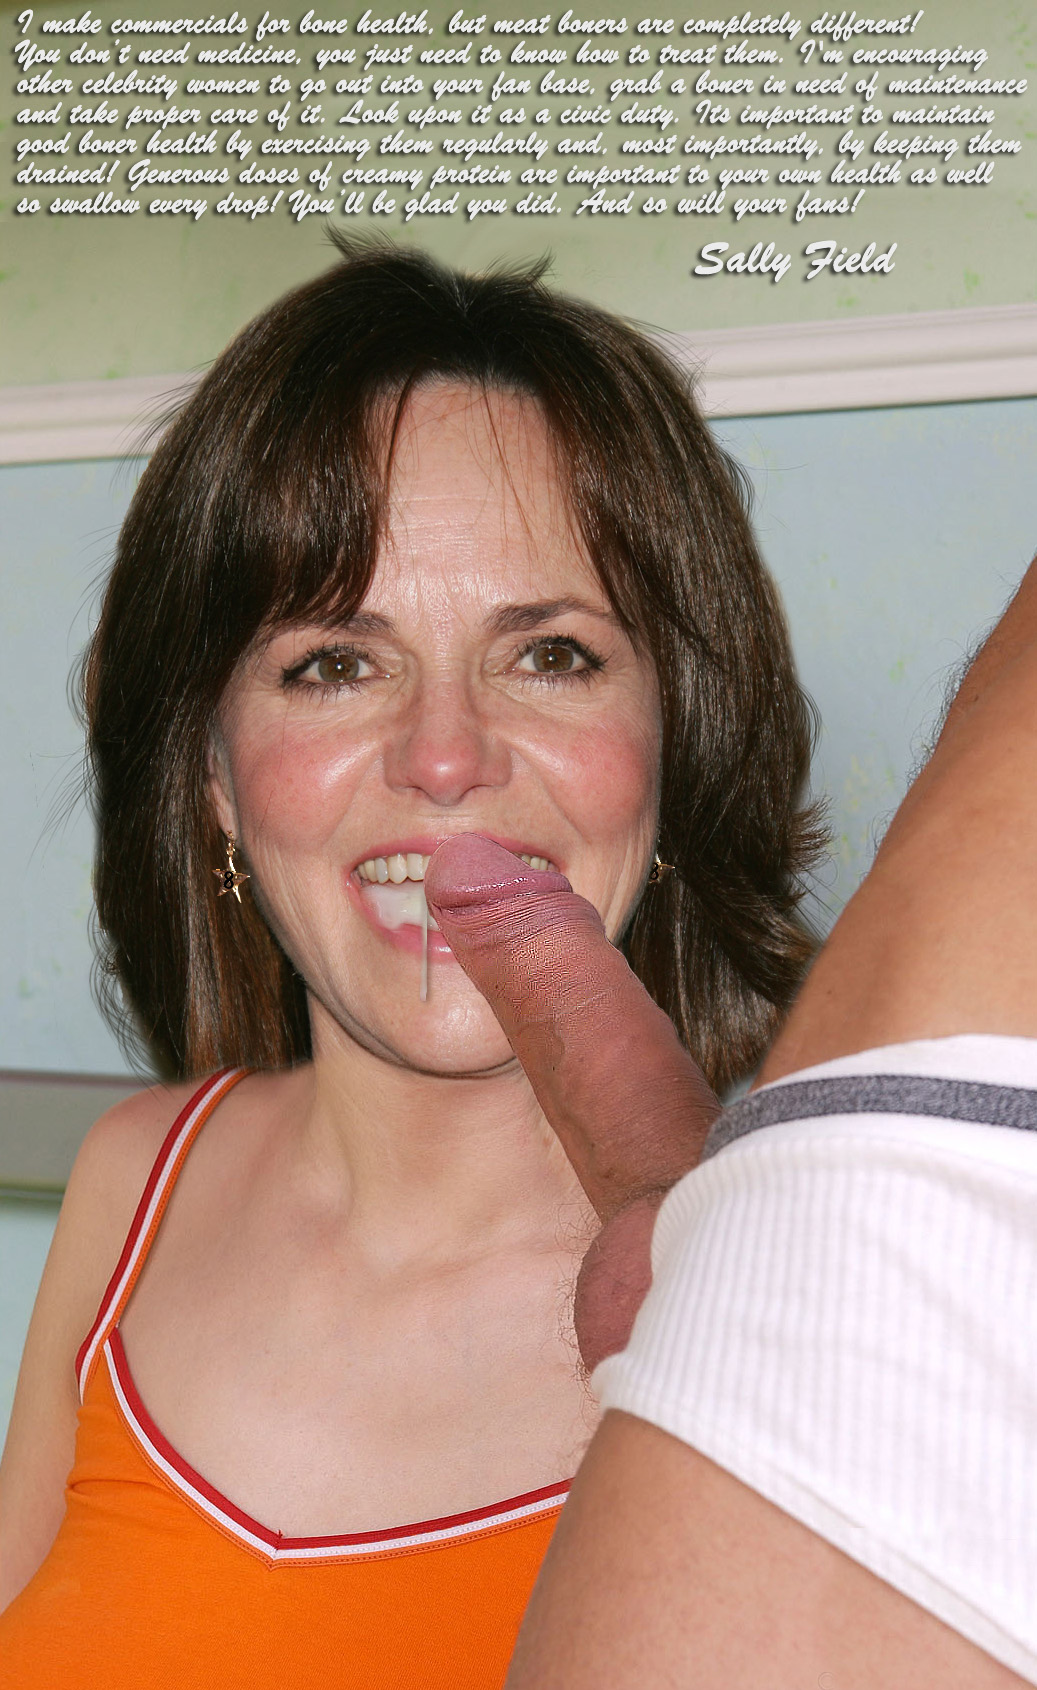 Naked Pictures Of Sally Fields